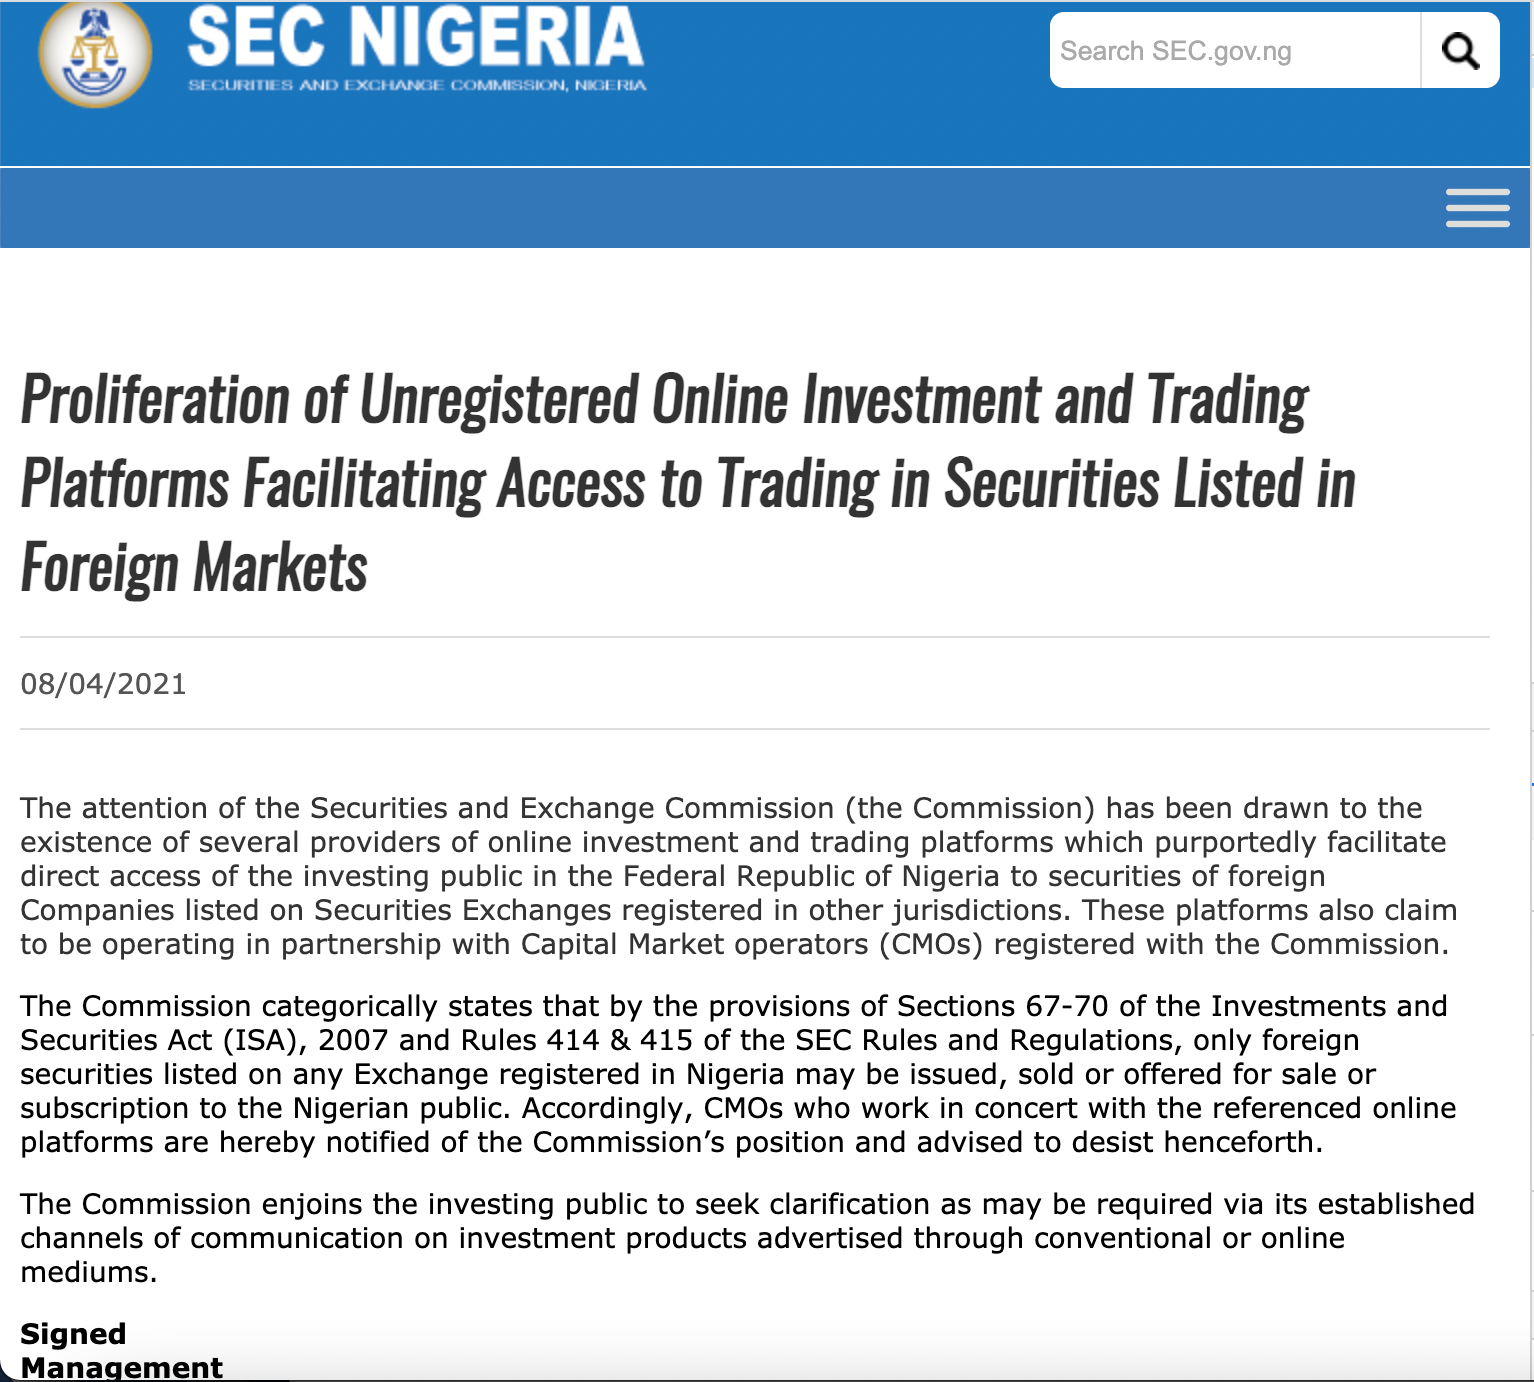 Nigeria's SEC circular to investment platforms on April 8, 2021